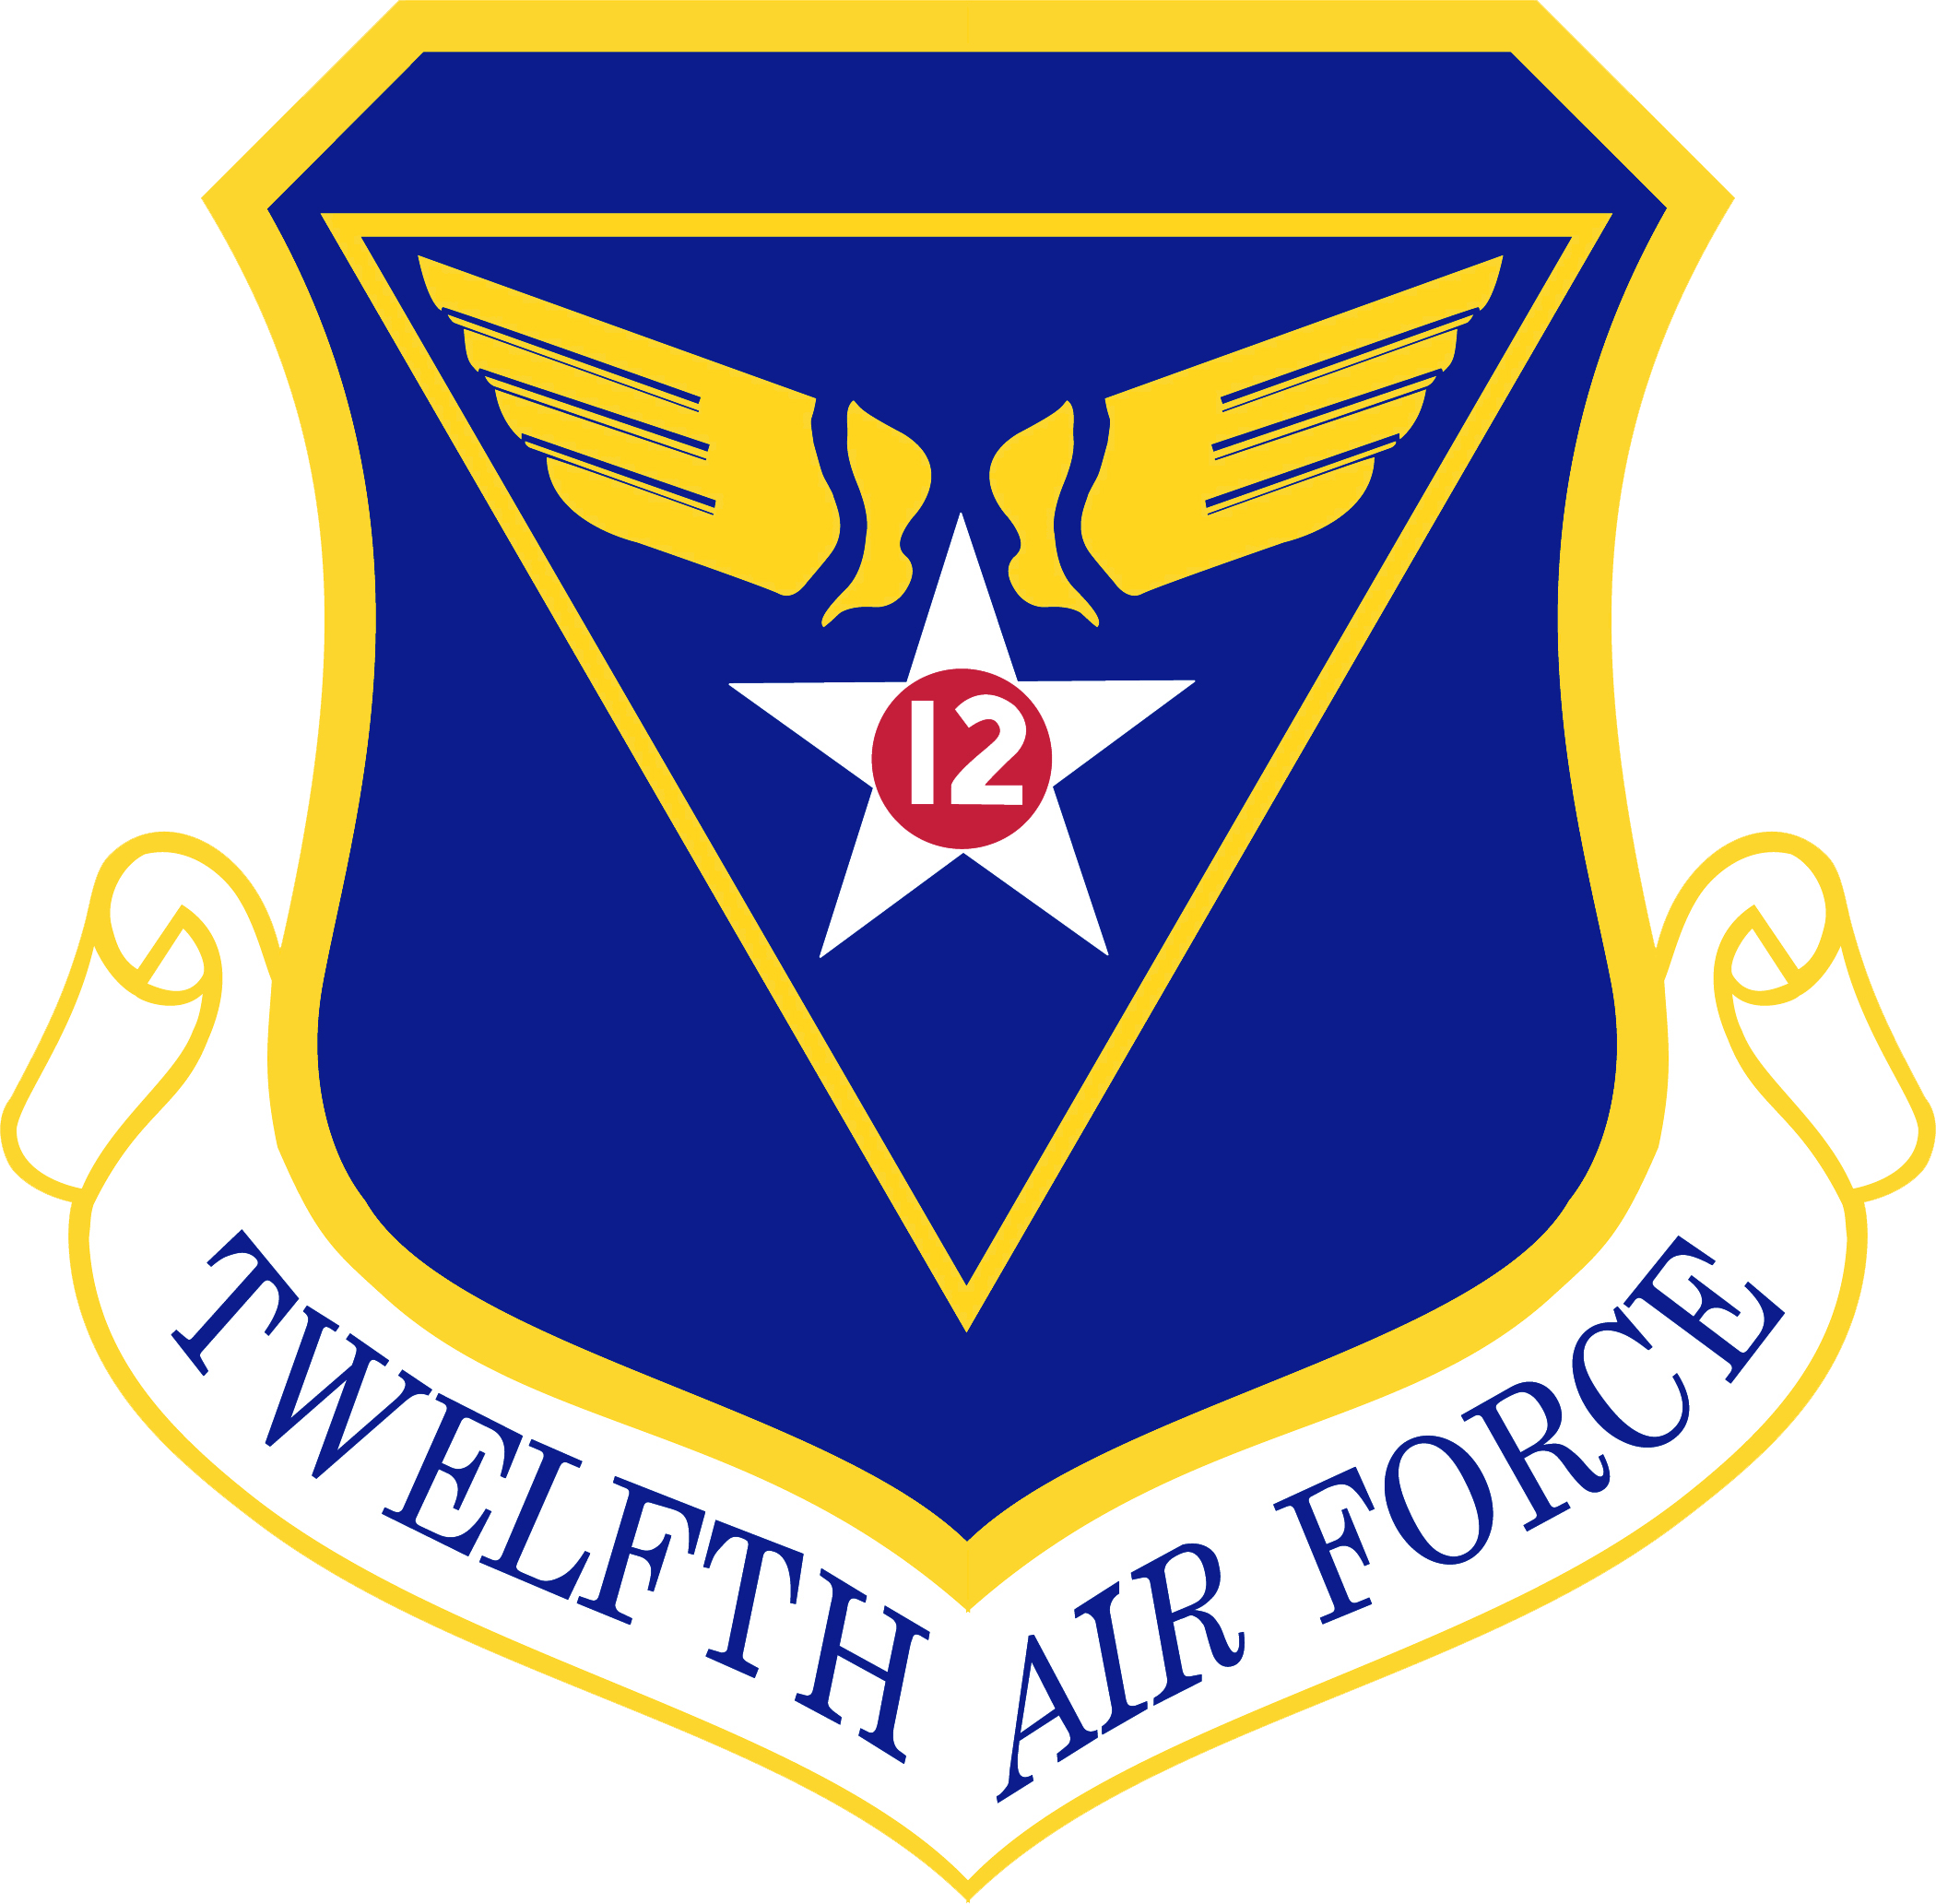 USAF - 12th AIR FORCE PATCH